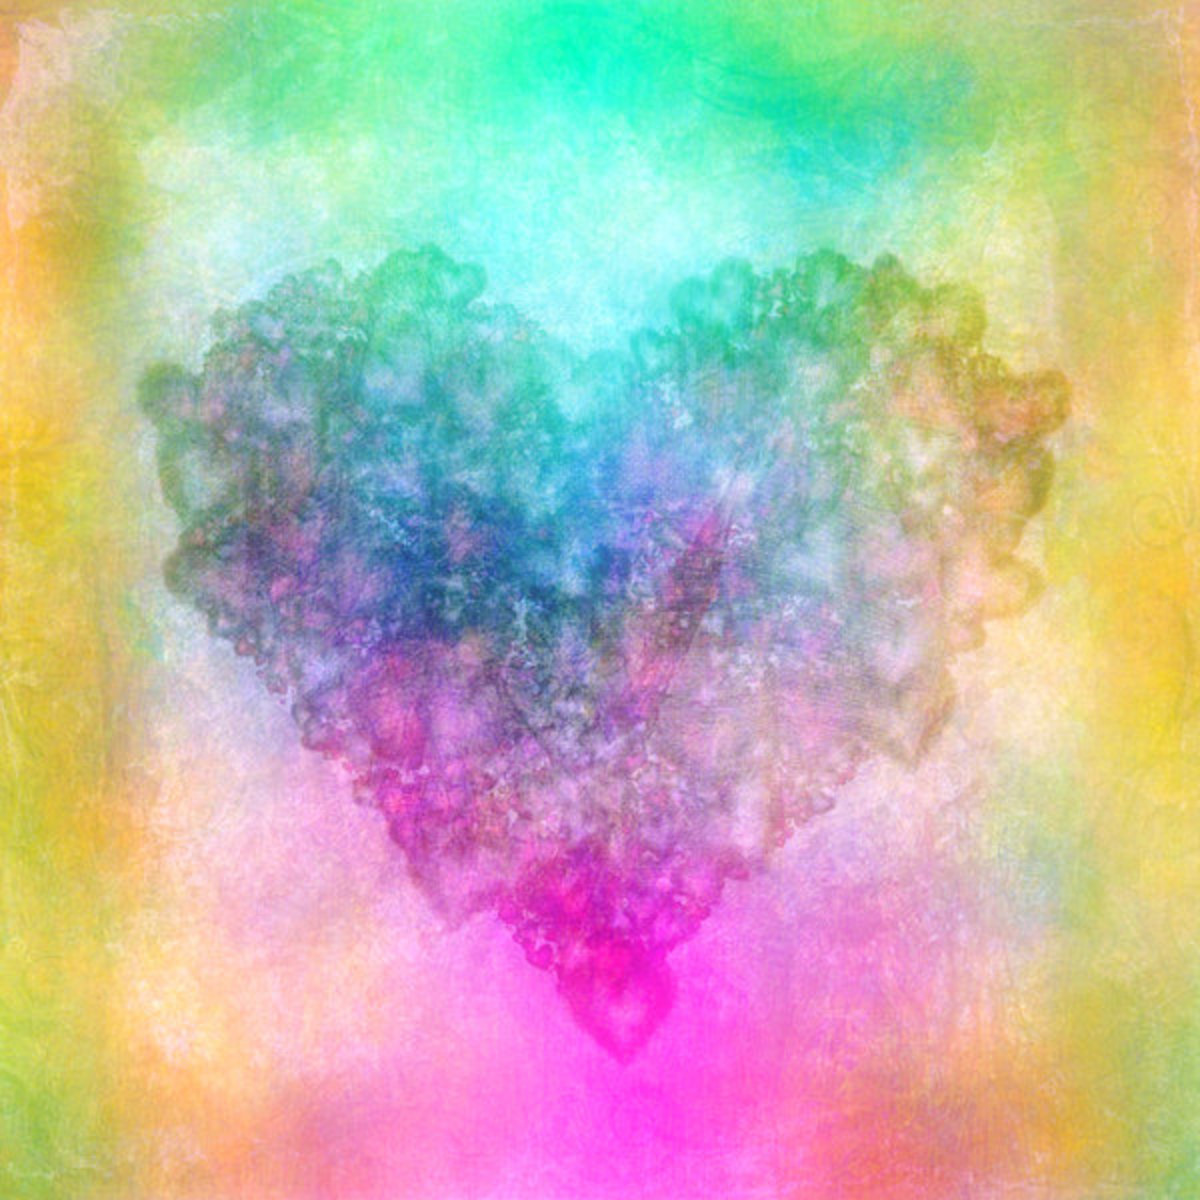 Heart Watercolor Painting